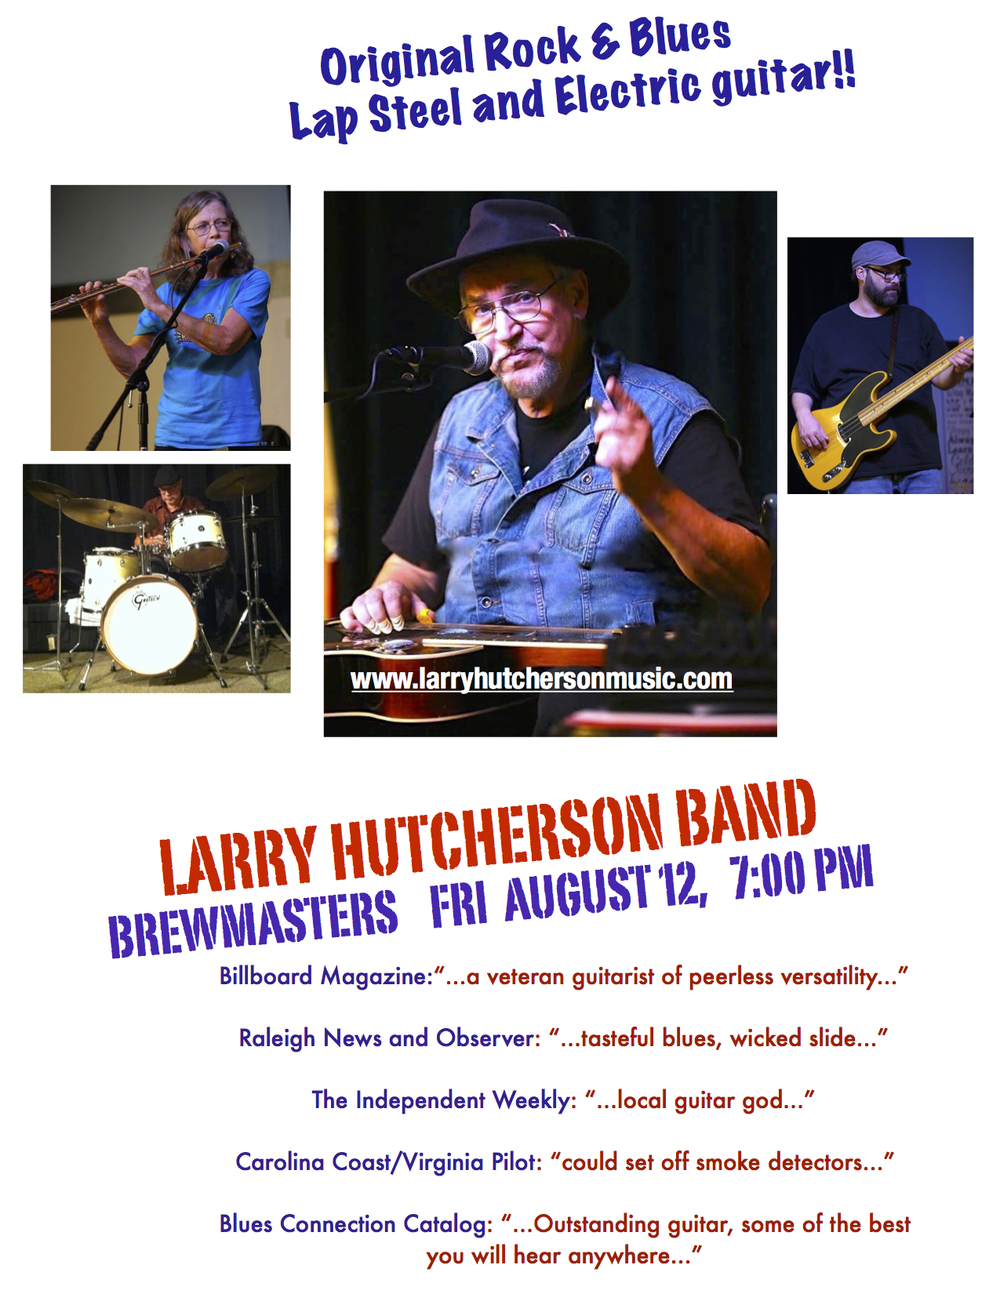 Larry Hutcherson Band